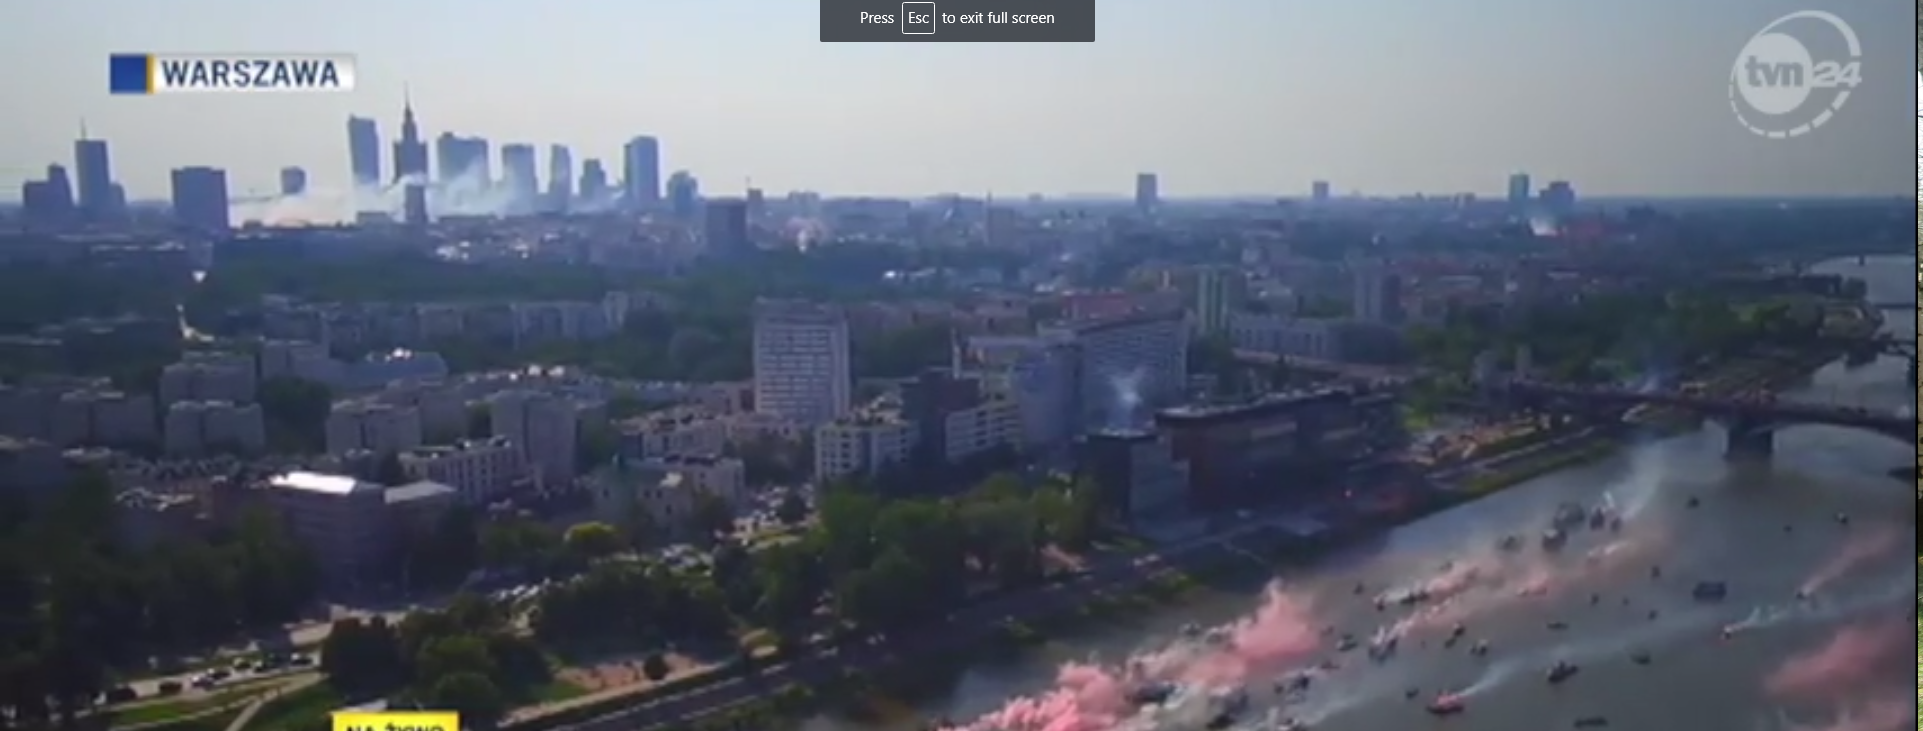 They set off flares and have a siren going for a minute at 5 pm on August 1 every year in Warsaw. Even though we are 3 miles from Warsaw, we could hear the sirens as well.